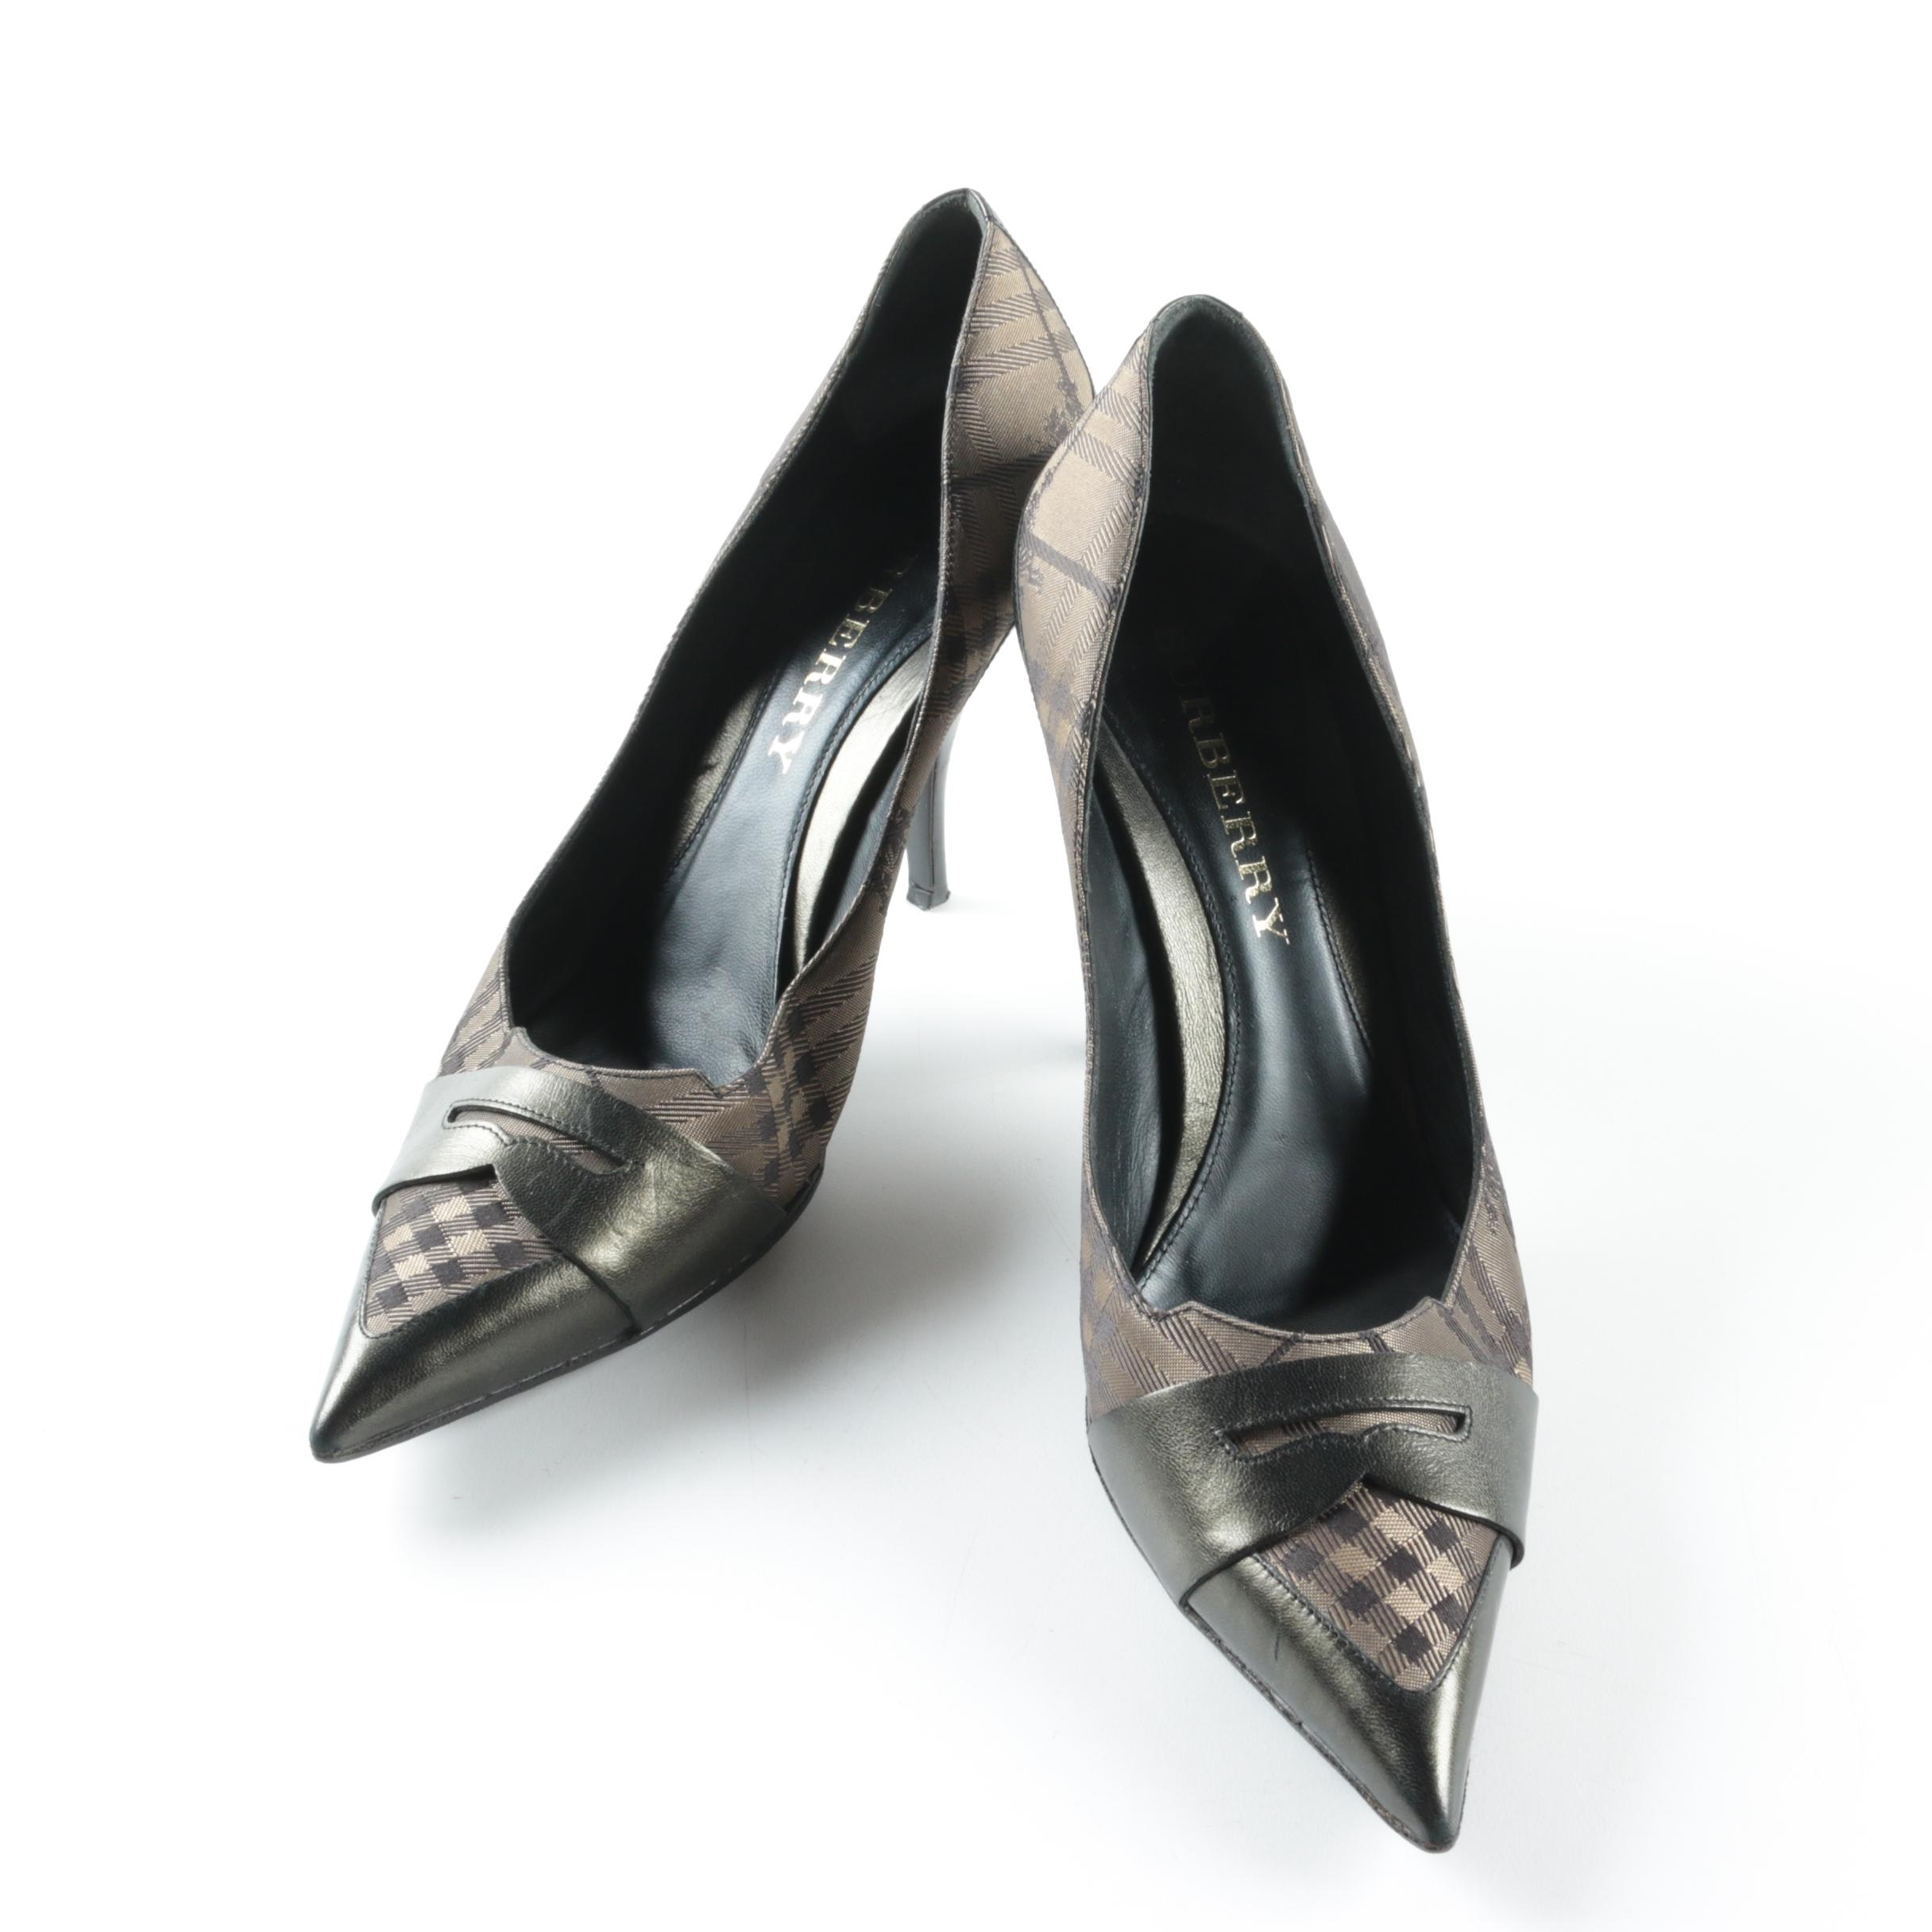 Burberry Canvas Check and Gunmetal Leather Pumps